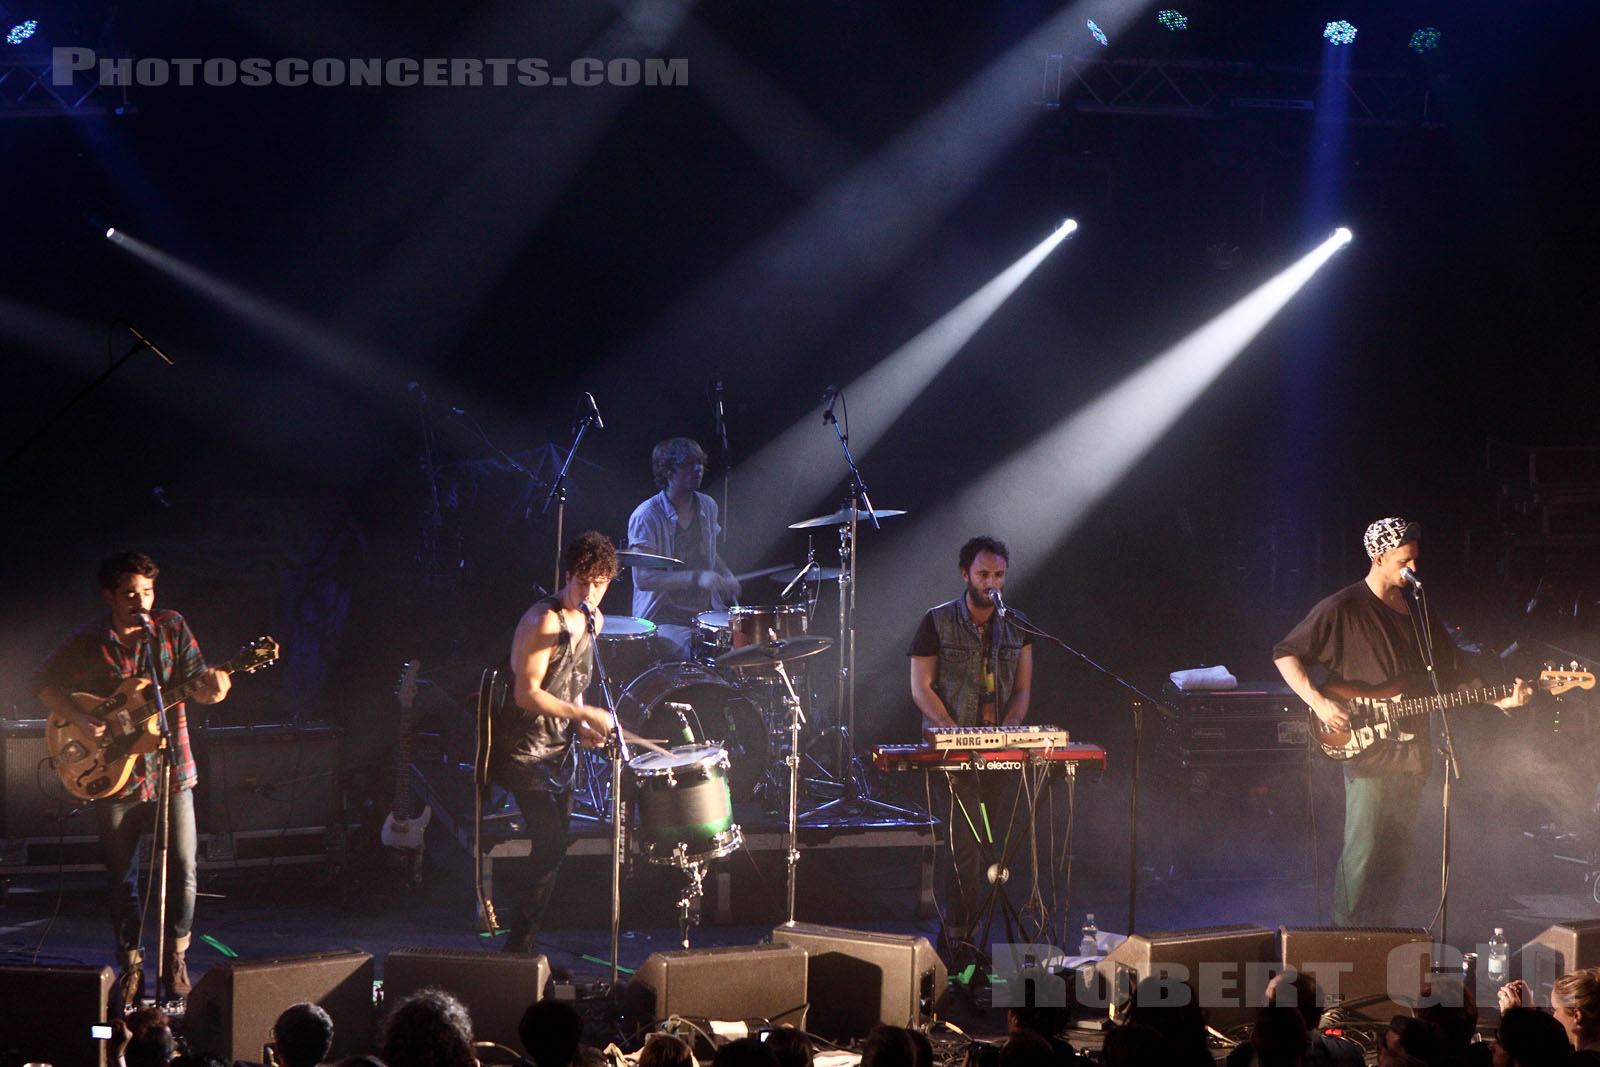 LOCAL NATIVES - 2010-11-06 - PARIS - La Cigale